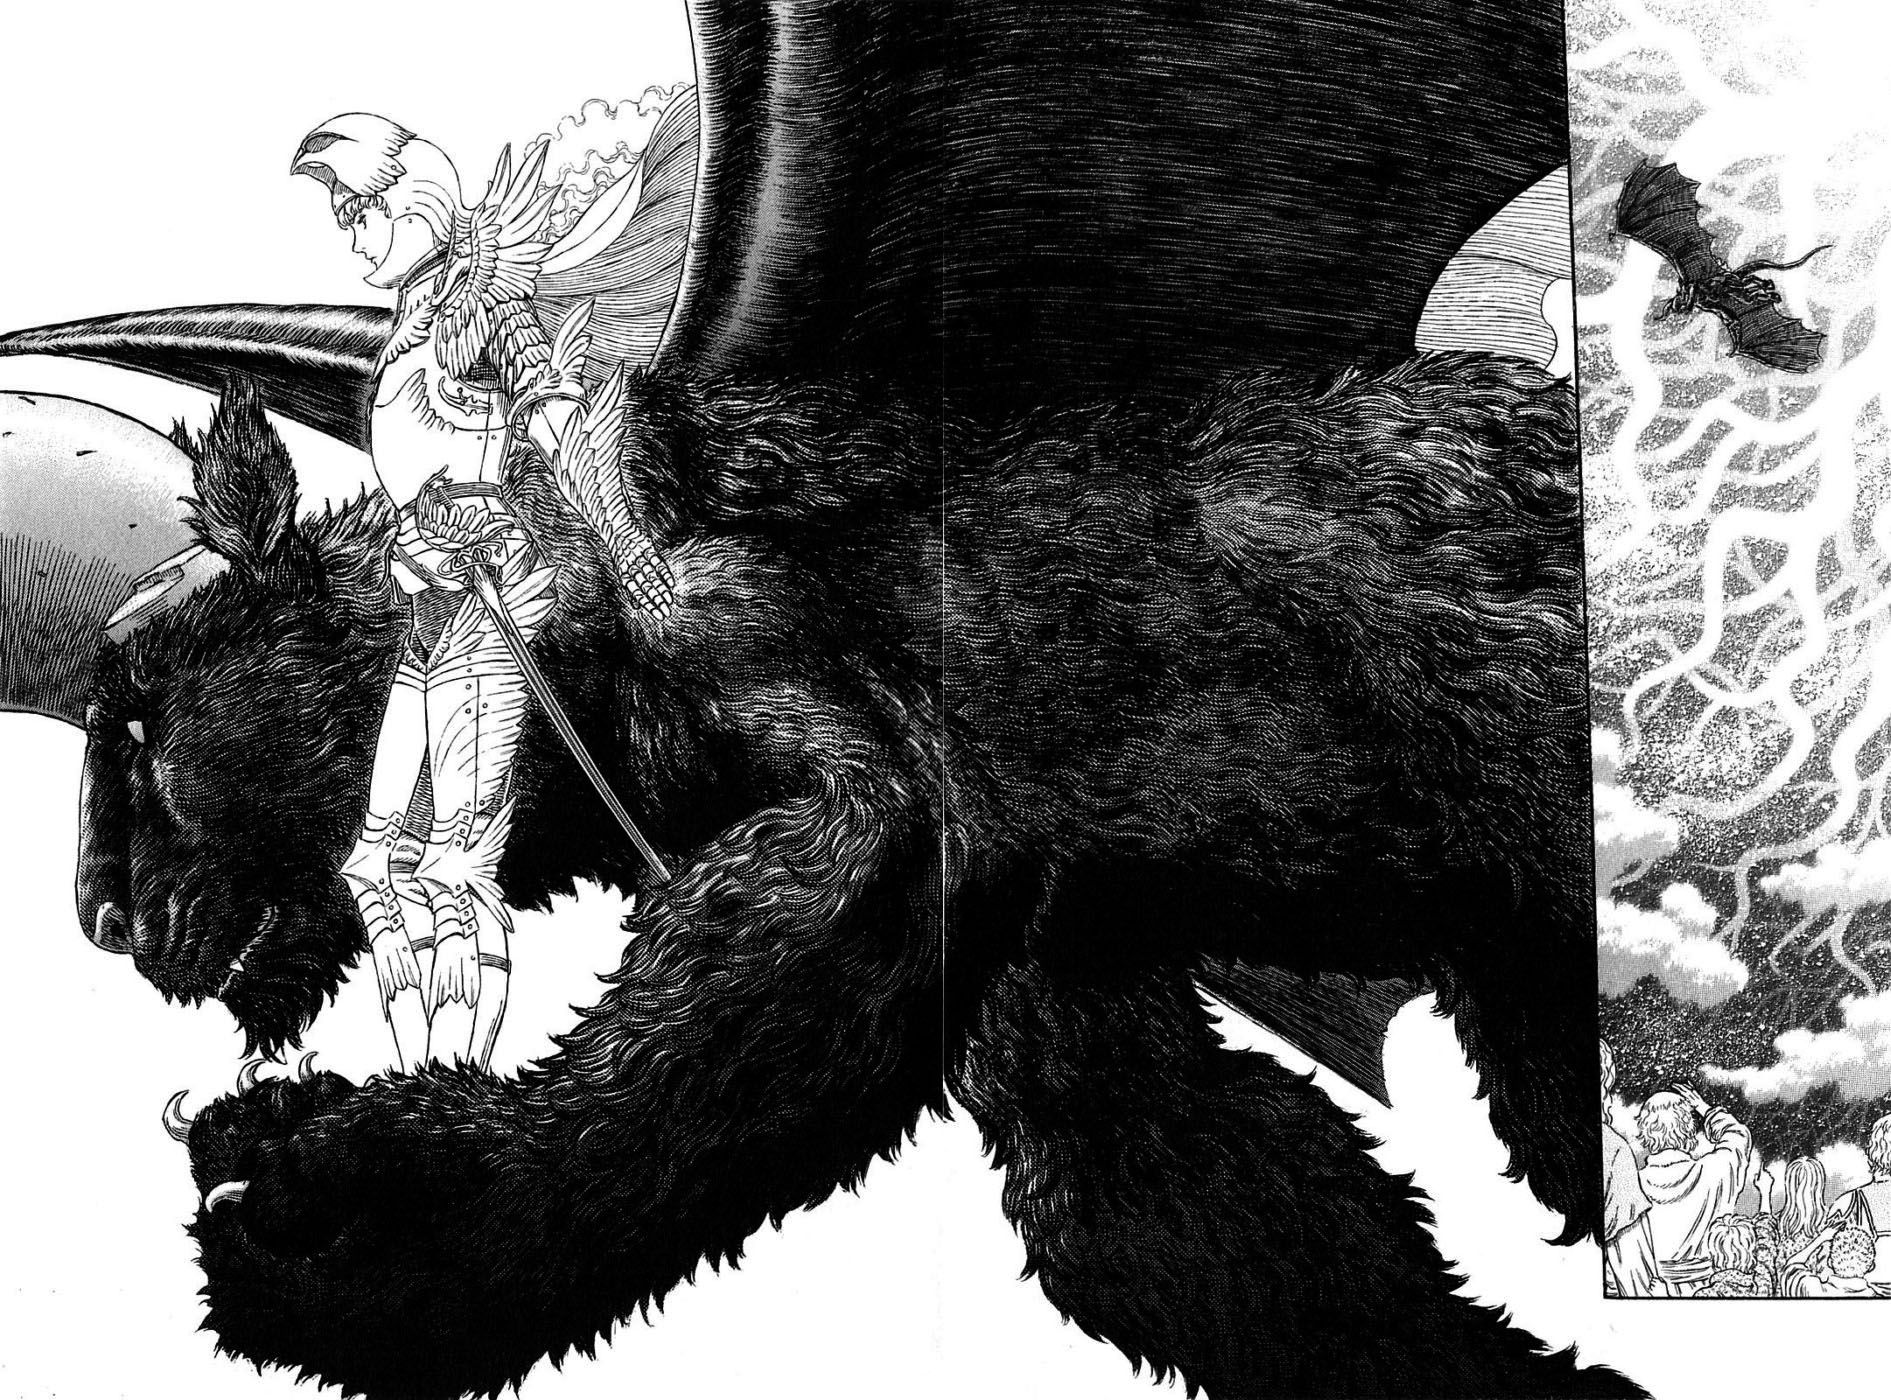 Berserk (Kentaro Miura) http://www.zerochan.net/full/1559656 ★ || CHARACTER DESIGN REFERENCES | キャラクターデザイン • Find more artworks at https://www.facebook.com/CharacterDesignReferences & http://www.pinterest.com/characterdesigh and learn how to draw: #concept #art #animation #anime #comics || ★